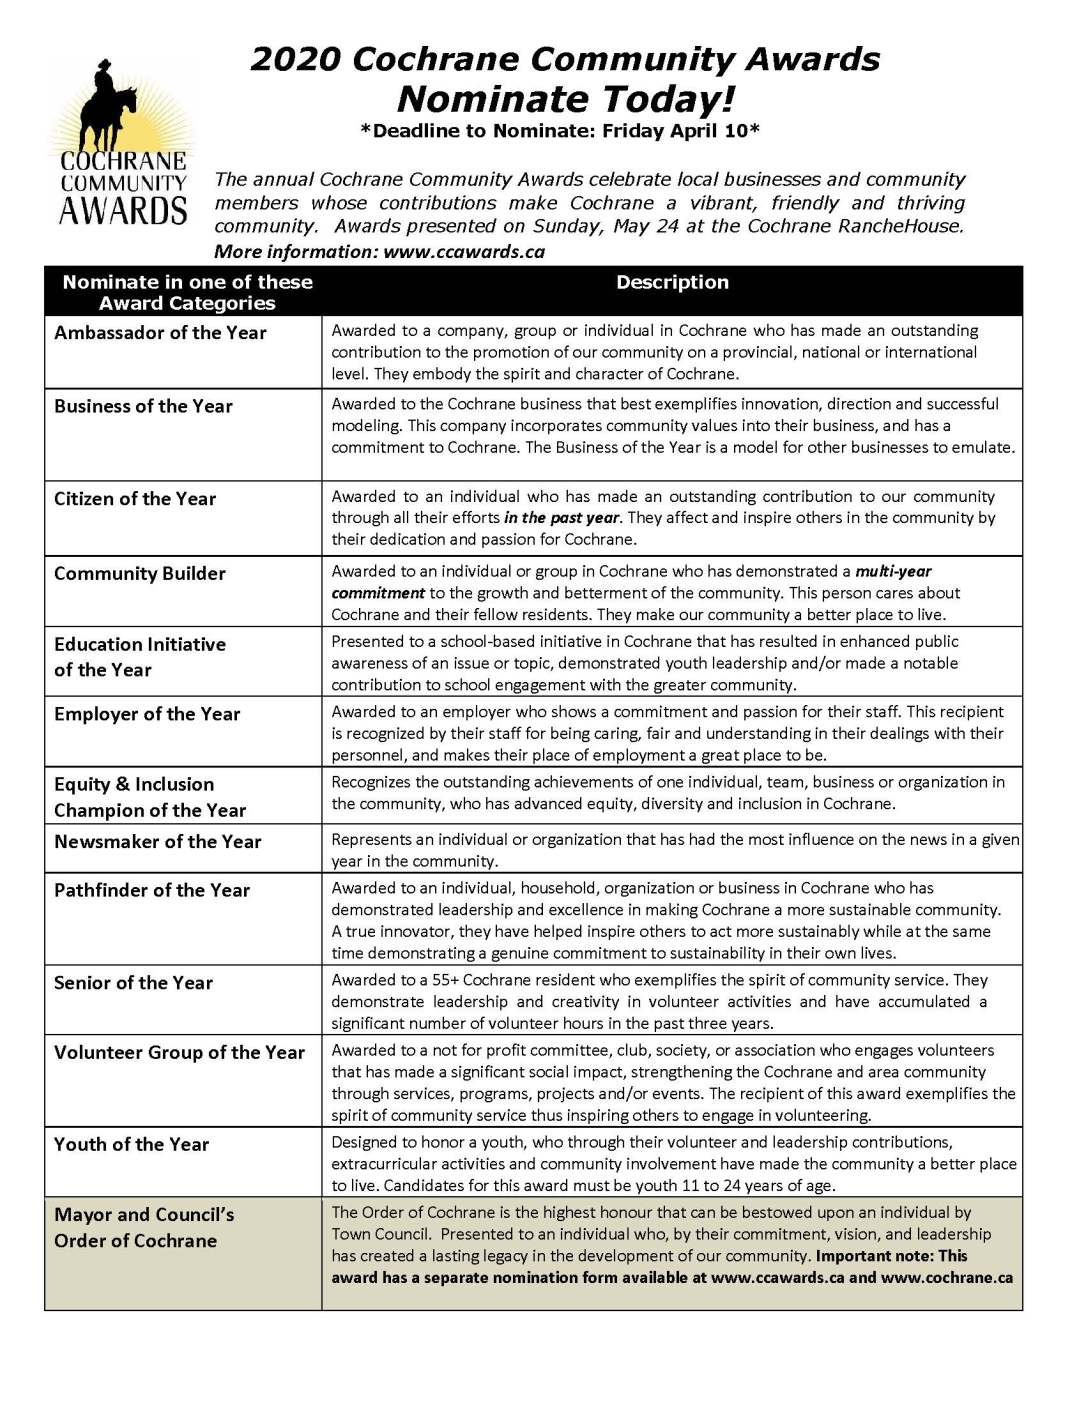 2020 CCA Nomination Form_Page_1